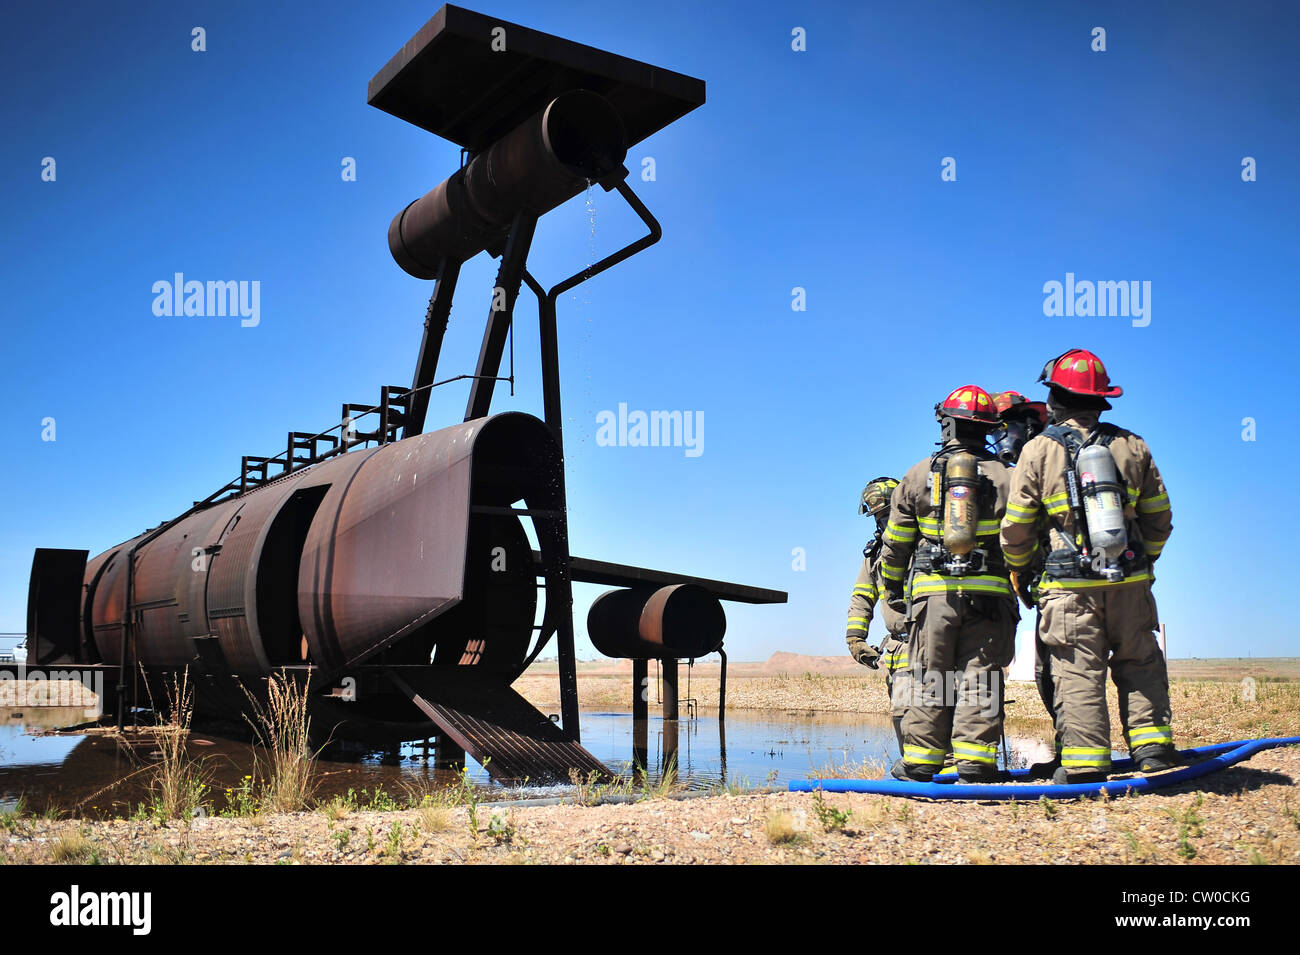 Members of the Clovis, N.M., Fire Department prepare to enter the burn pit to extinguish a fire at Cannon Air Force - Stock Image